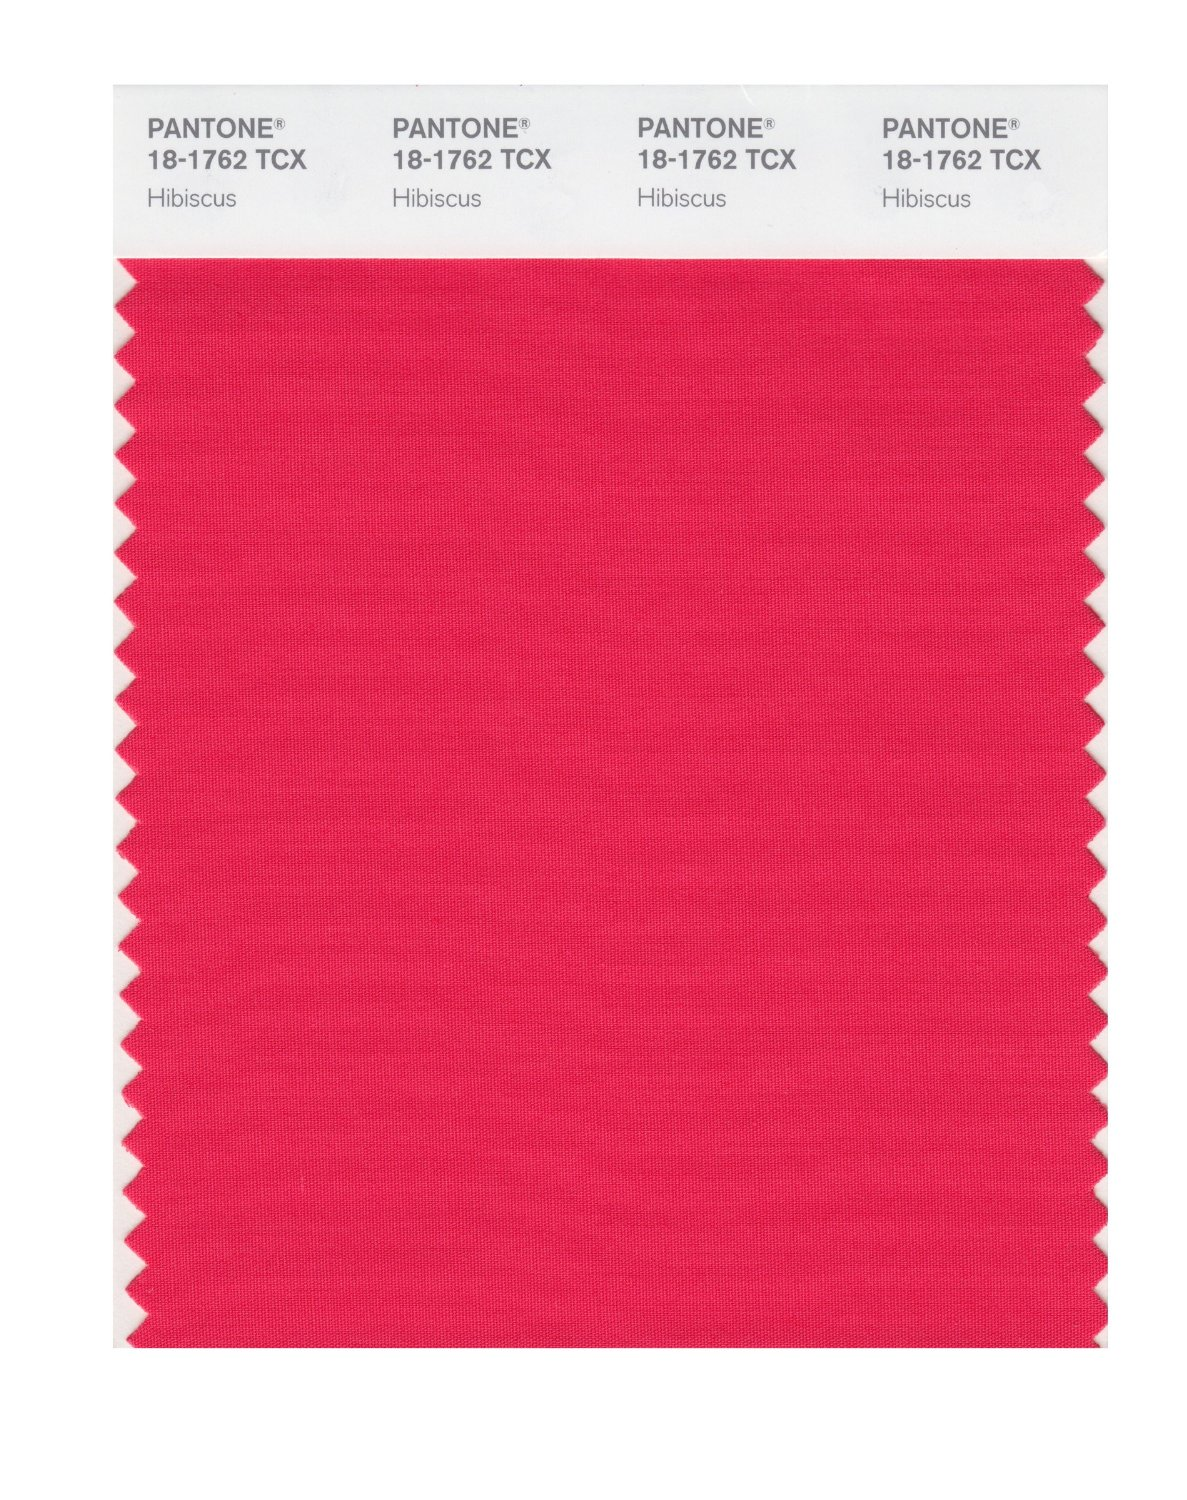 Pantone Smart Swatch 18-1762 Hibiscus